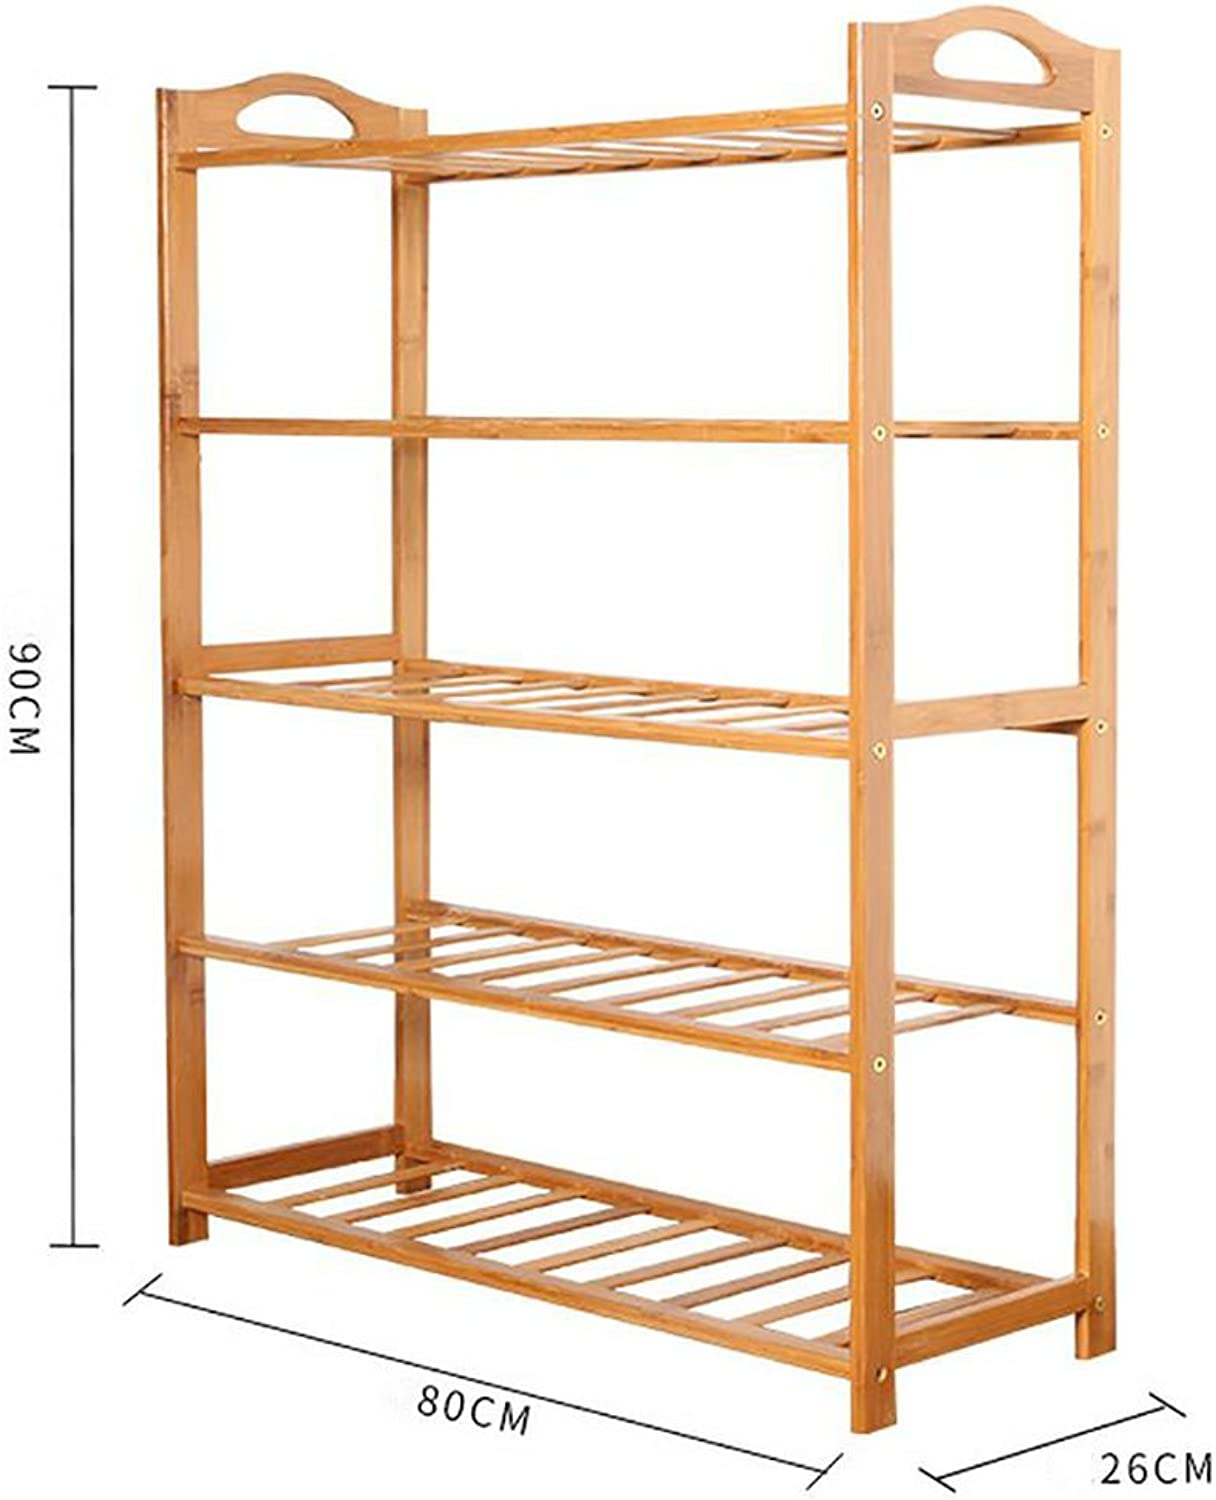 shoes Bench Organizing Rack shoes Rack Bamboo Shelves Multi - Layer dust - Proof Solid Wood shoes Rack Assembly Economical Shelves Home Living Room shoes Cabinet (color   3, Size   80cm)